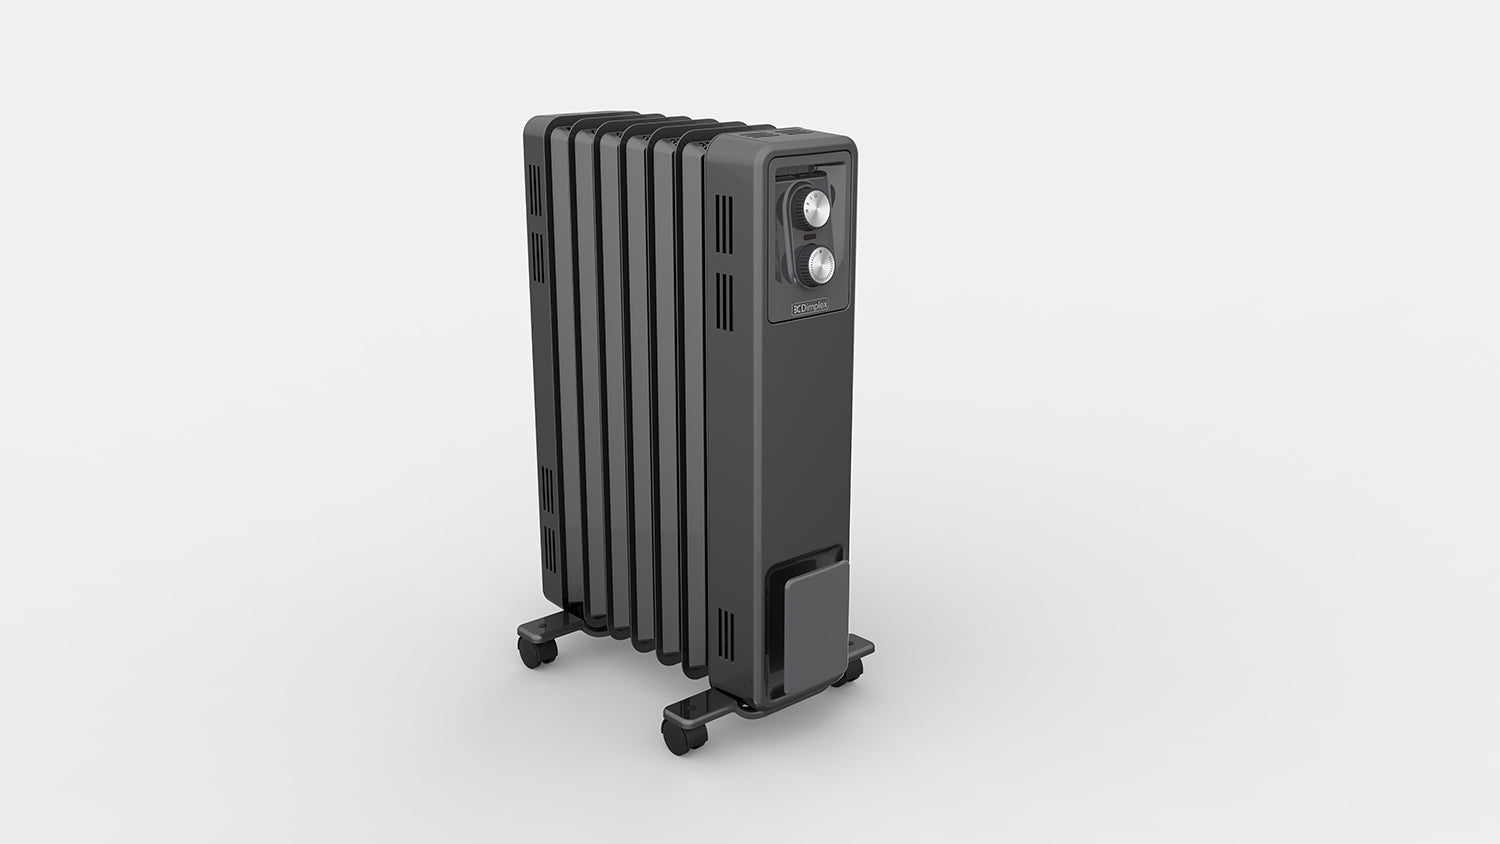 1.5kW Oil Free Column Heater